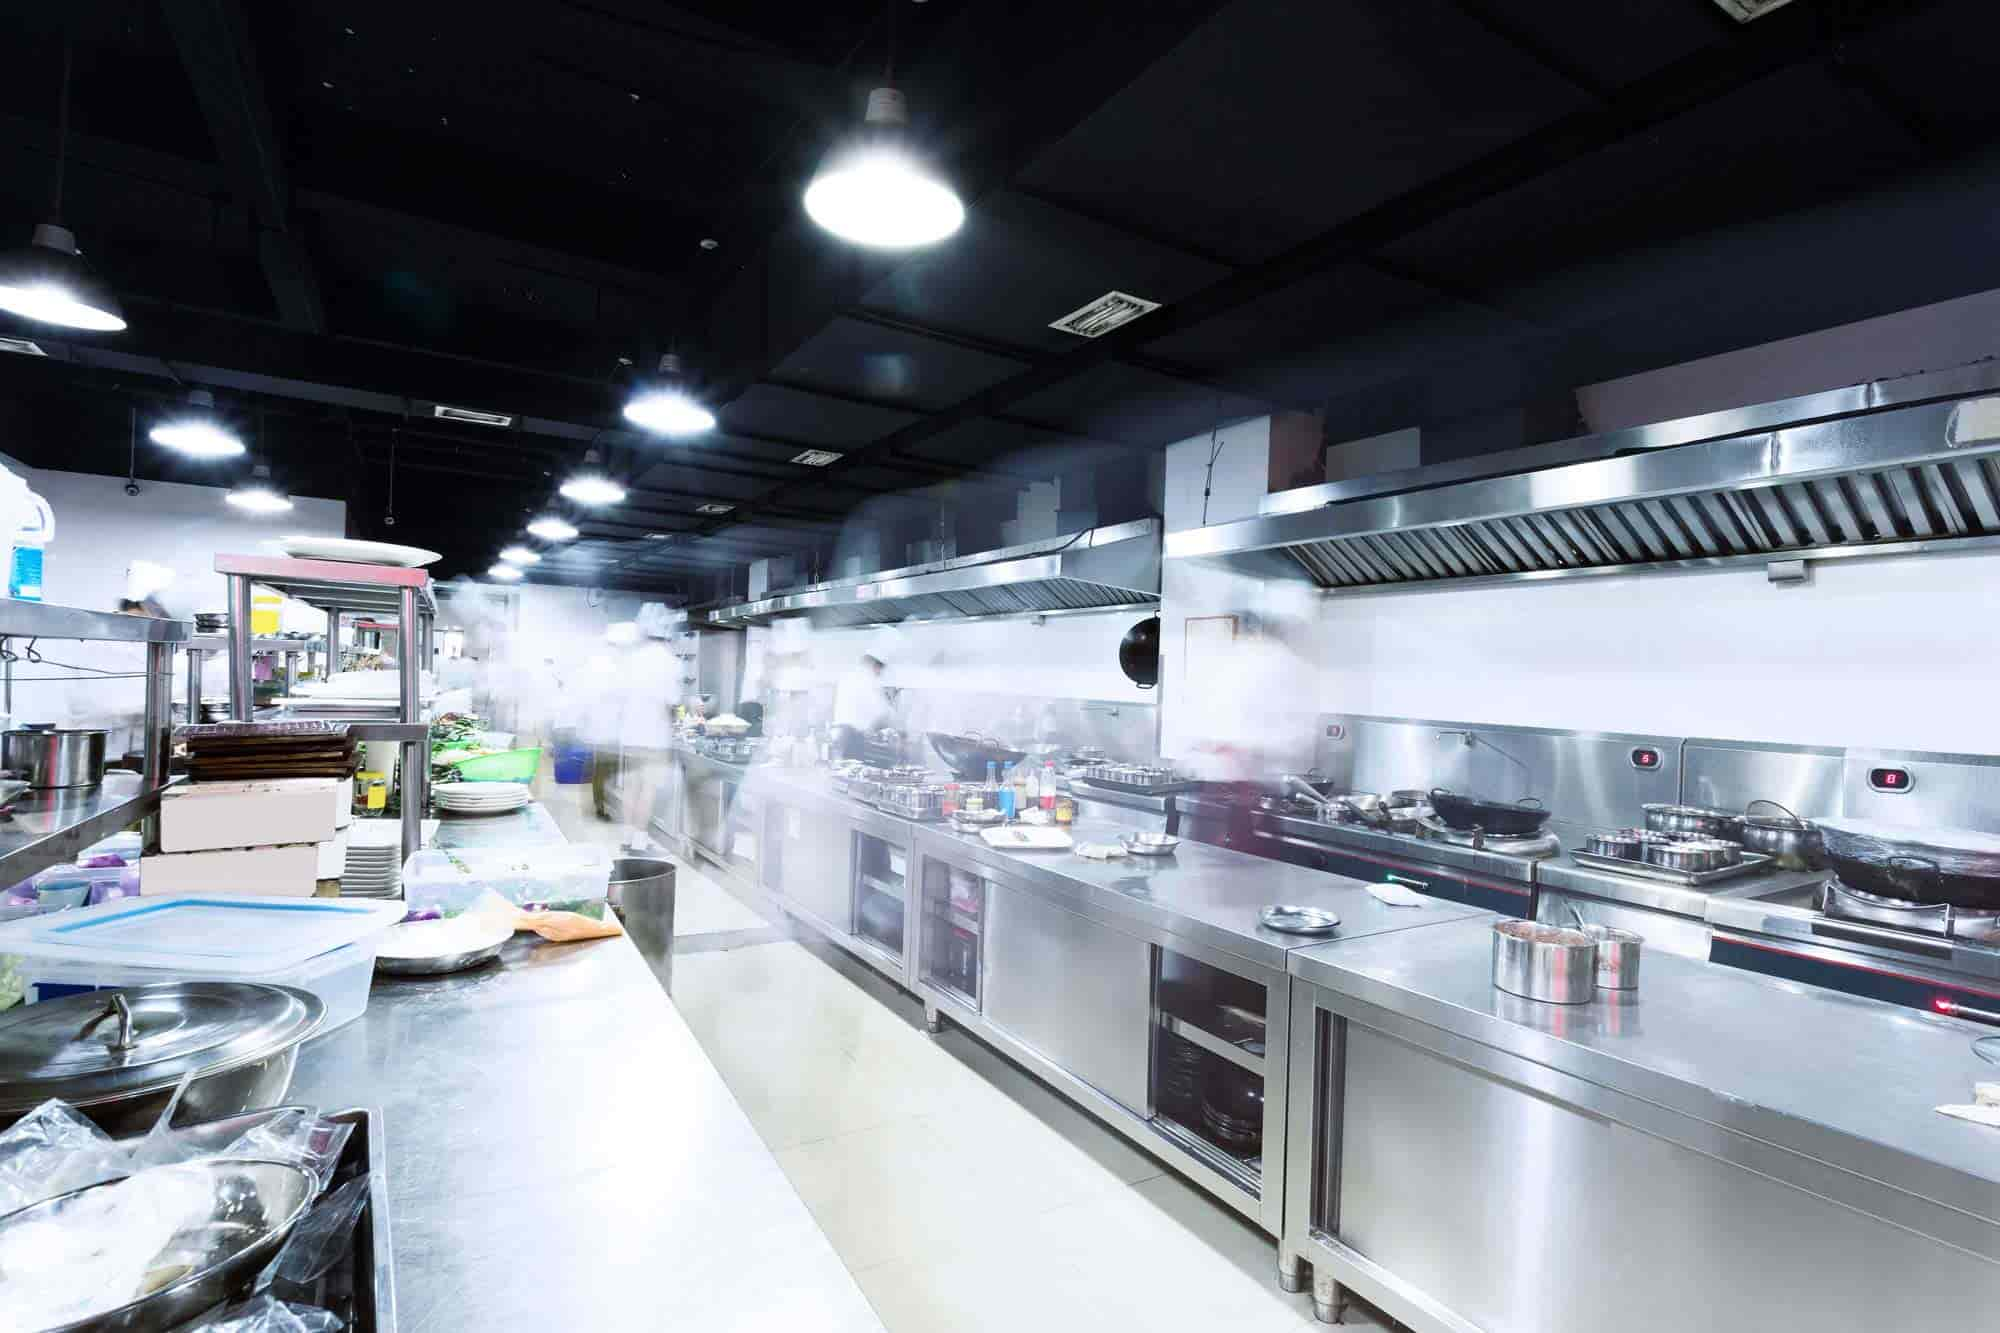 mercial kitchen equipment repairs restaurant dishwashers